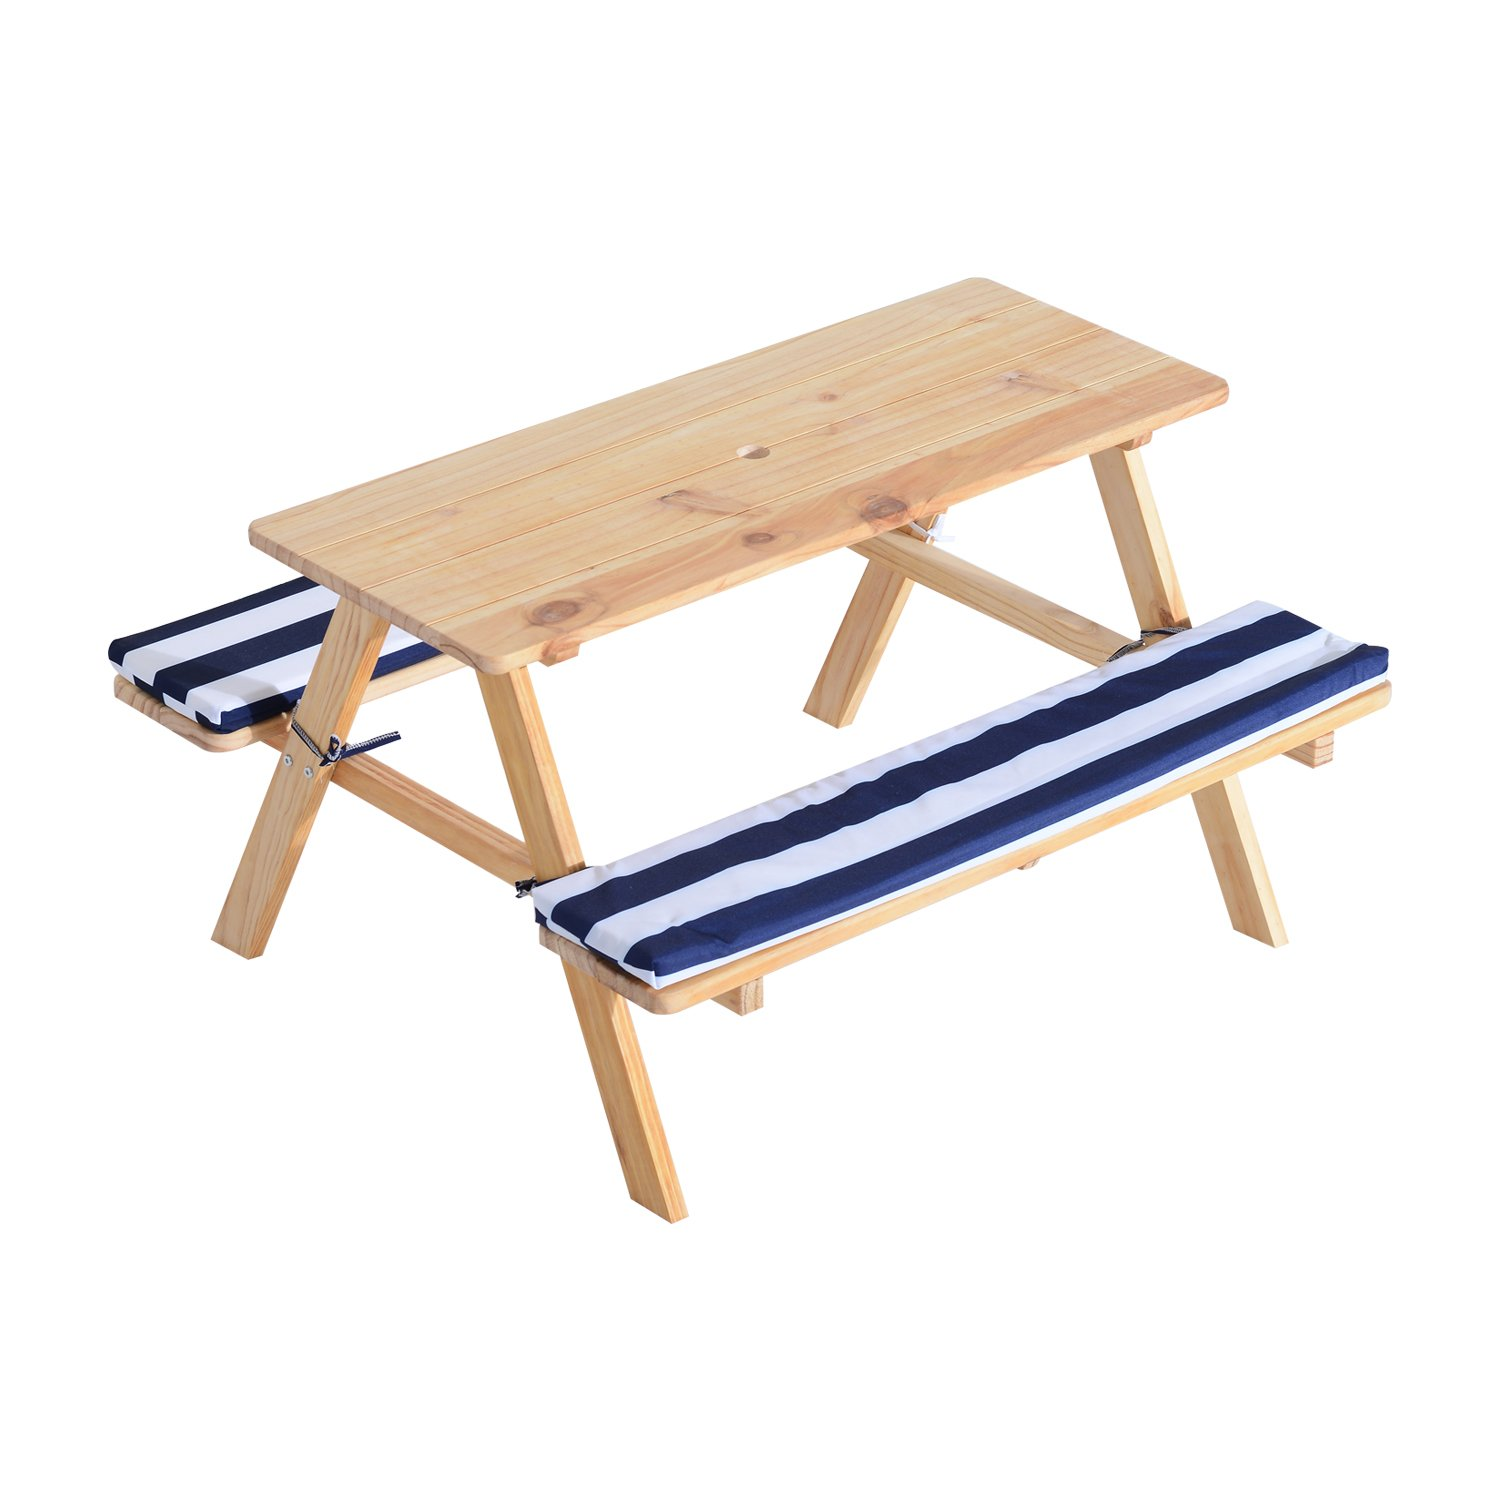 Festnight Wooden Outdoor Kids Picnic Table with Padded Benches